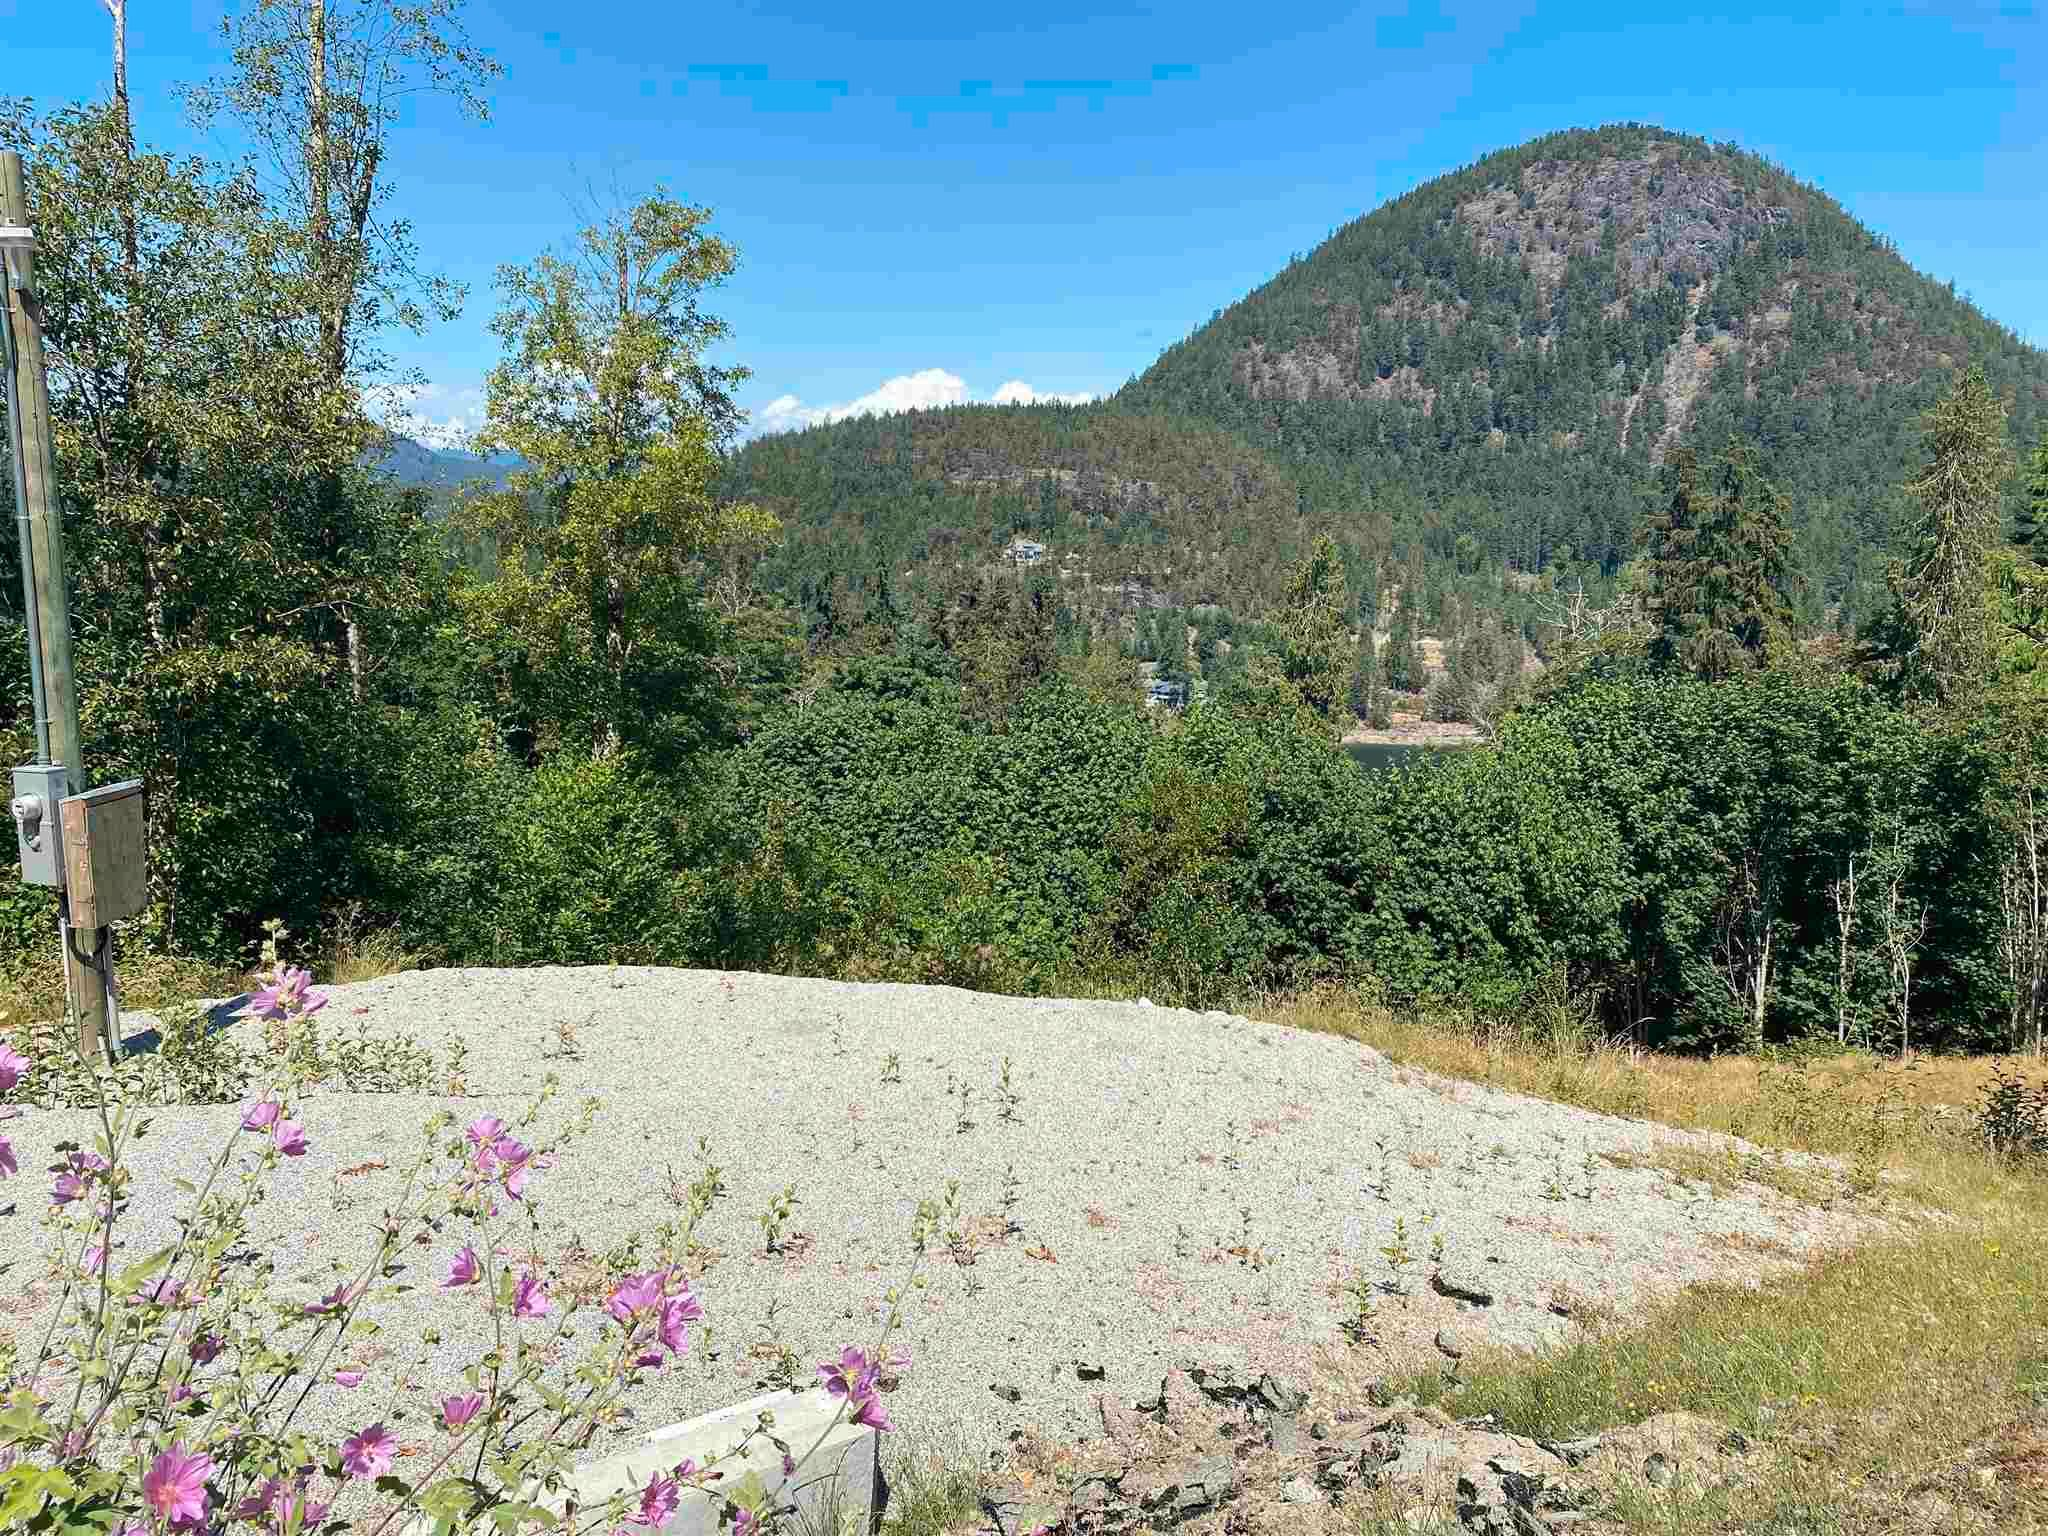 """Main Photo: LOT 3 CECIL HILL Road in Madeira Park: Pender Harbour Egmont Land for sale in """"Cecil Hill"""" (Sunshine Coast)  : MLS®# R2523244"""